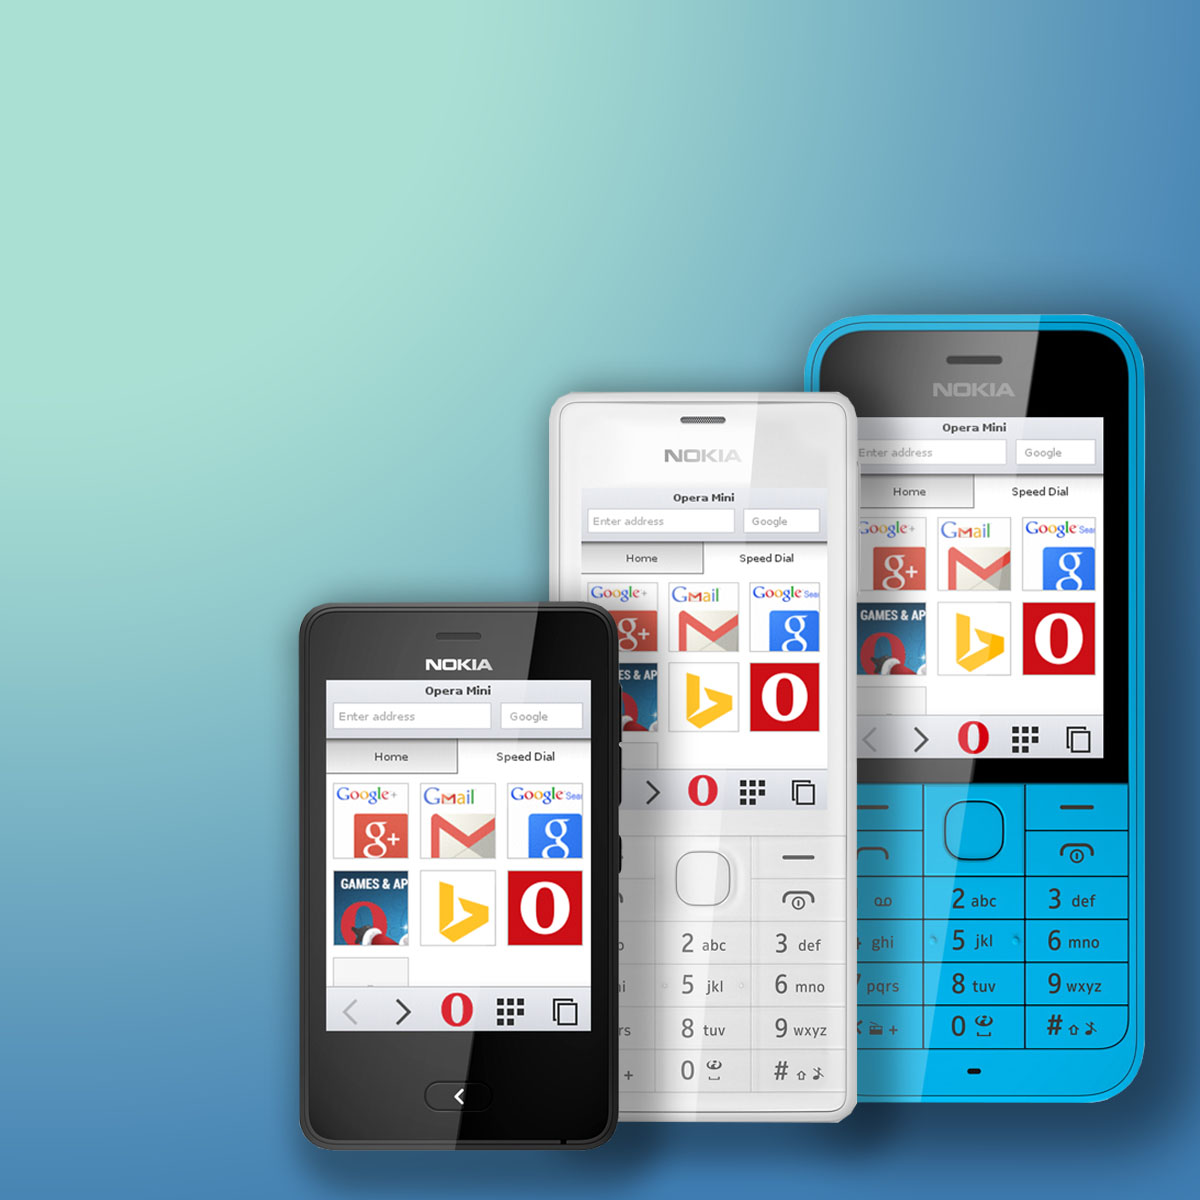 Download theme for nokia asha 501 hd theme for your android phone.